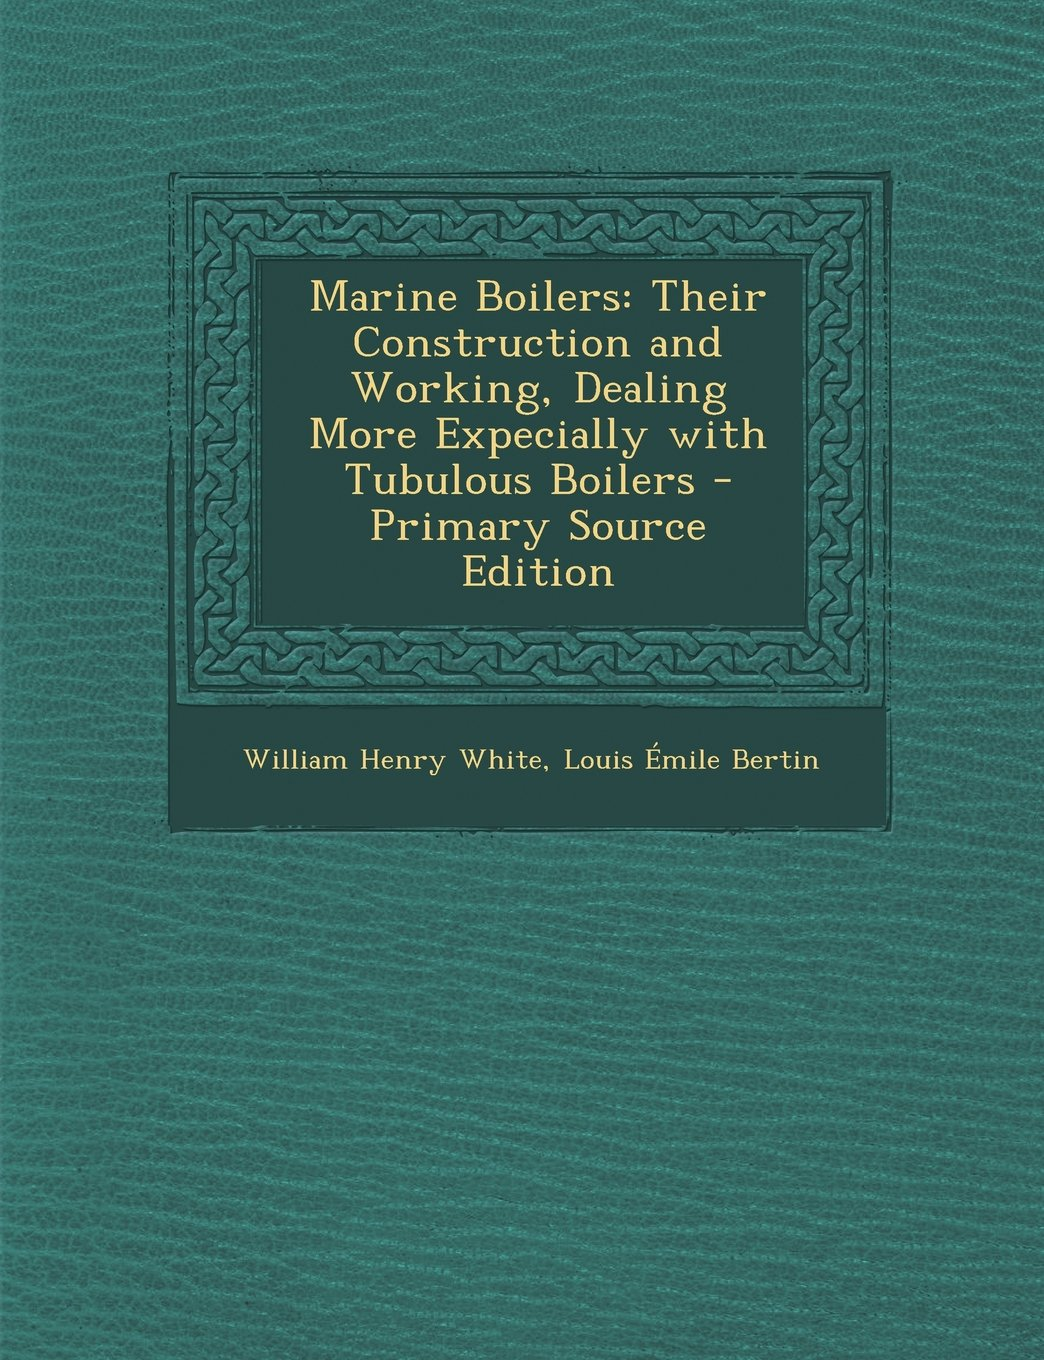 Buy Marine Boilers: Their Construction and Working, Dealing More ...